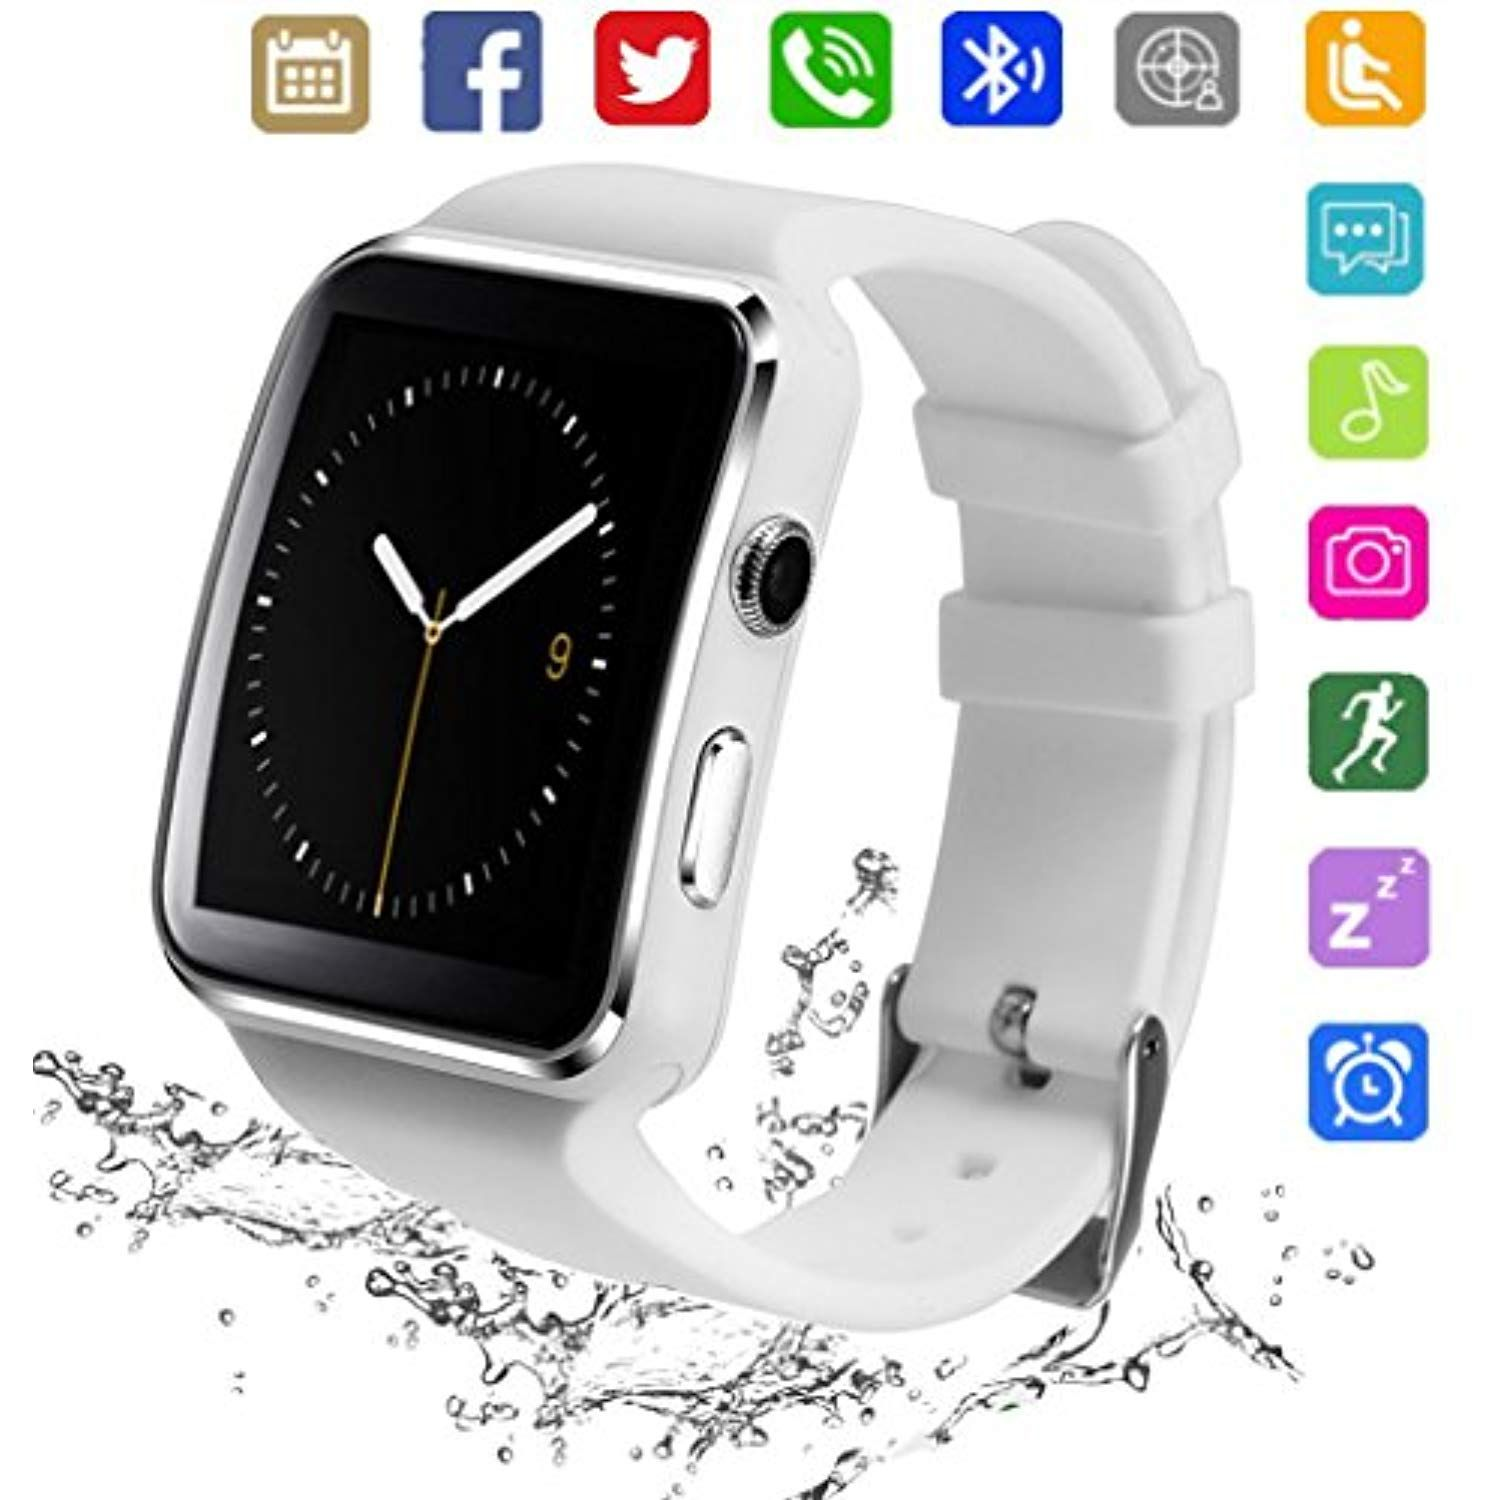 Bluetooth Smart Watch Kkcite Smartwatch Phone With Sim 2g Gsm For Android Smartphones Support Sleep Monitor Push Smart Watch Mens Digital Watches Camera Watch